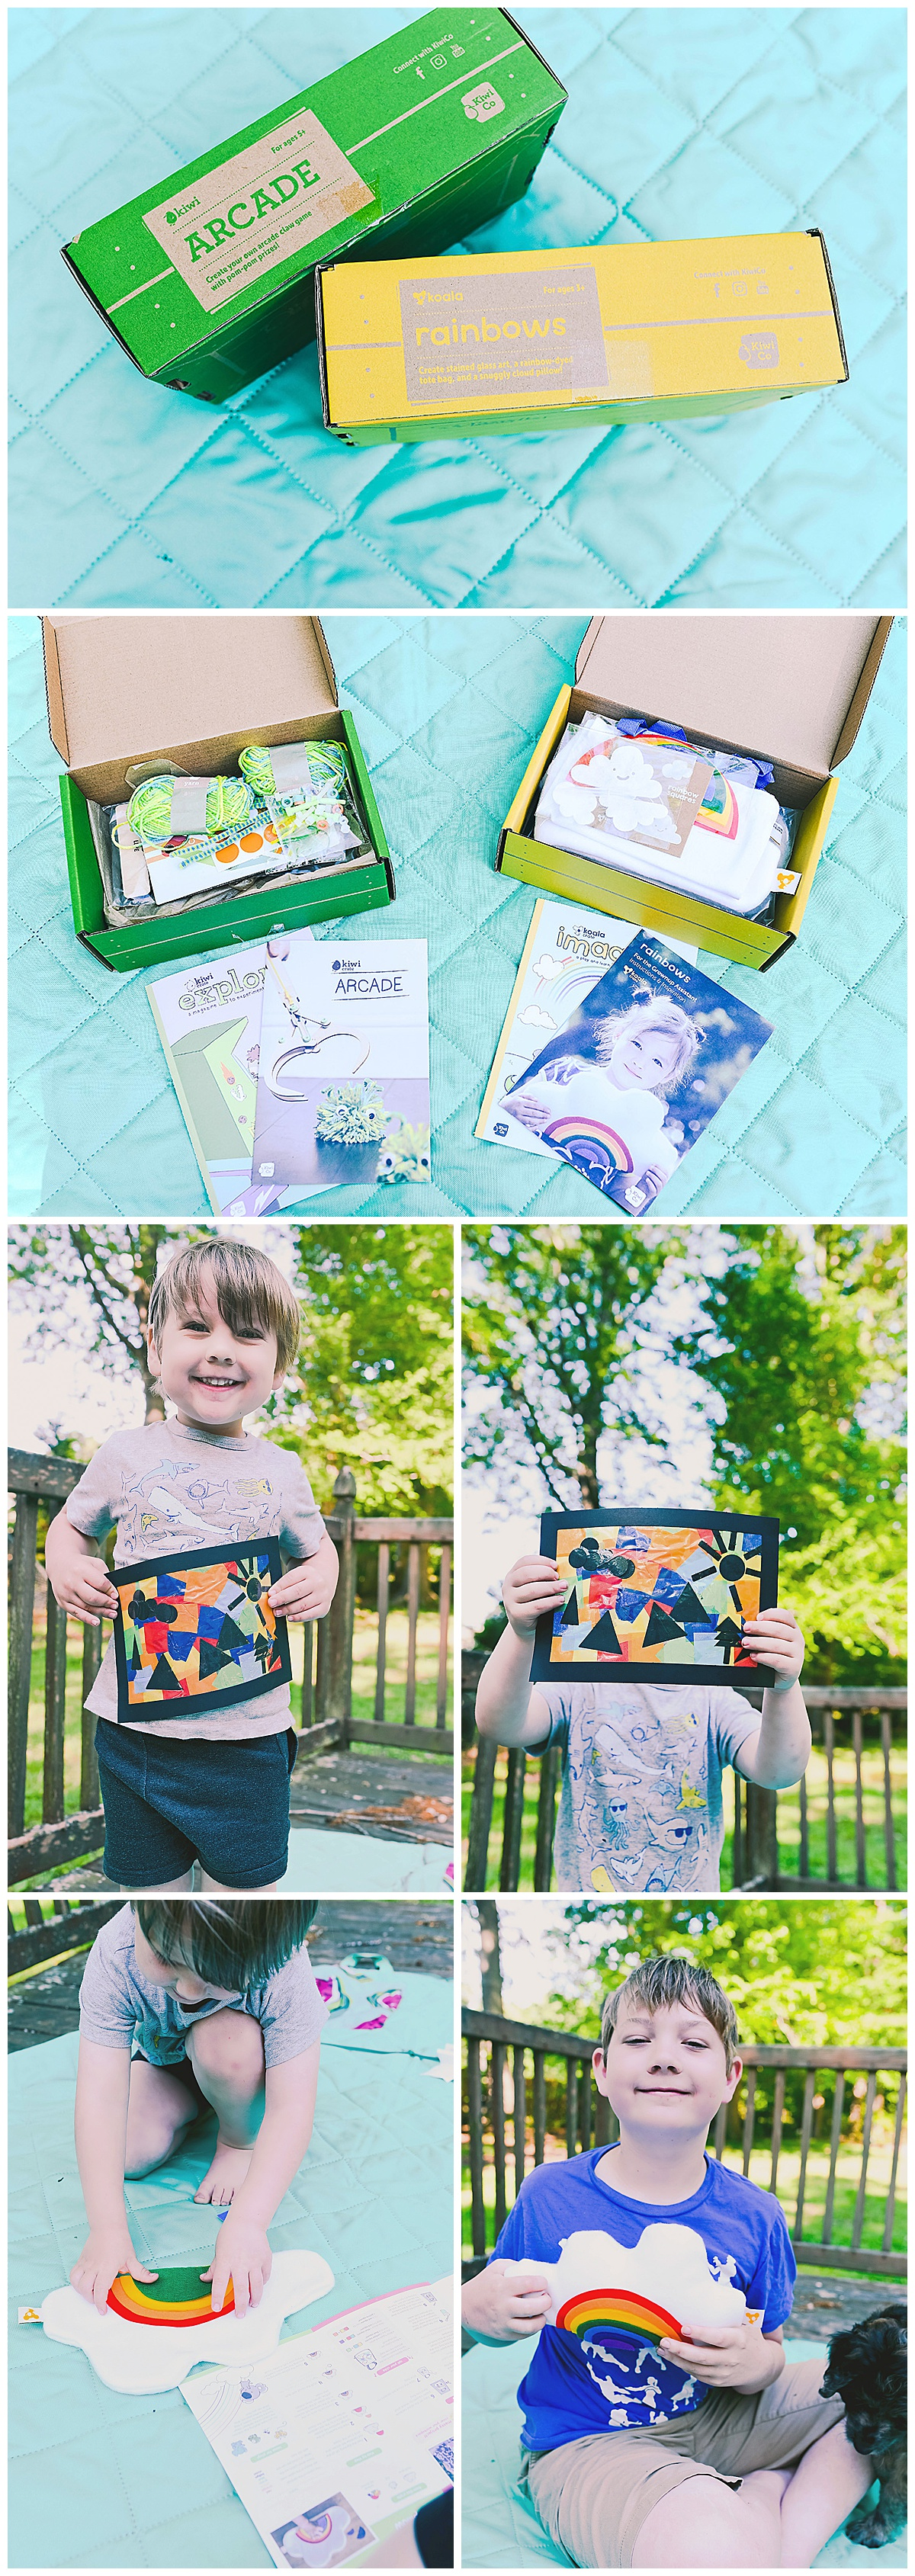 Family Springtime Fun Ideas